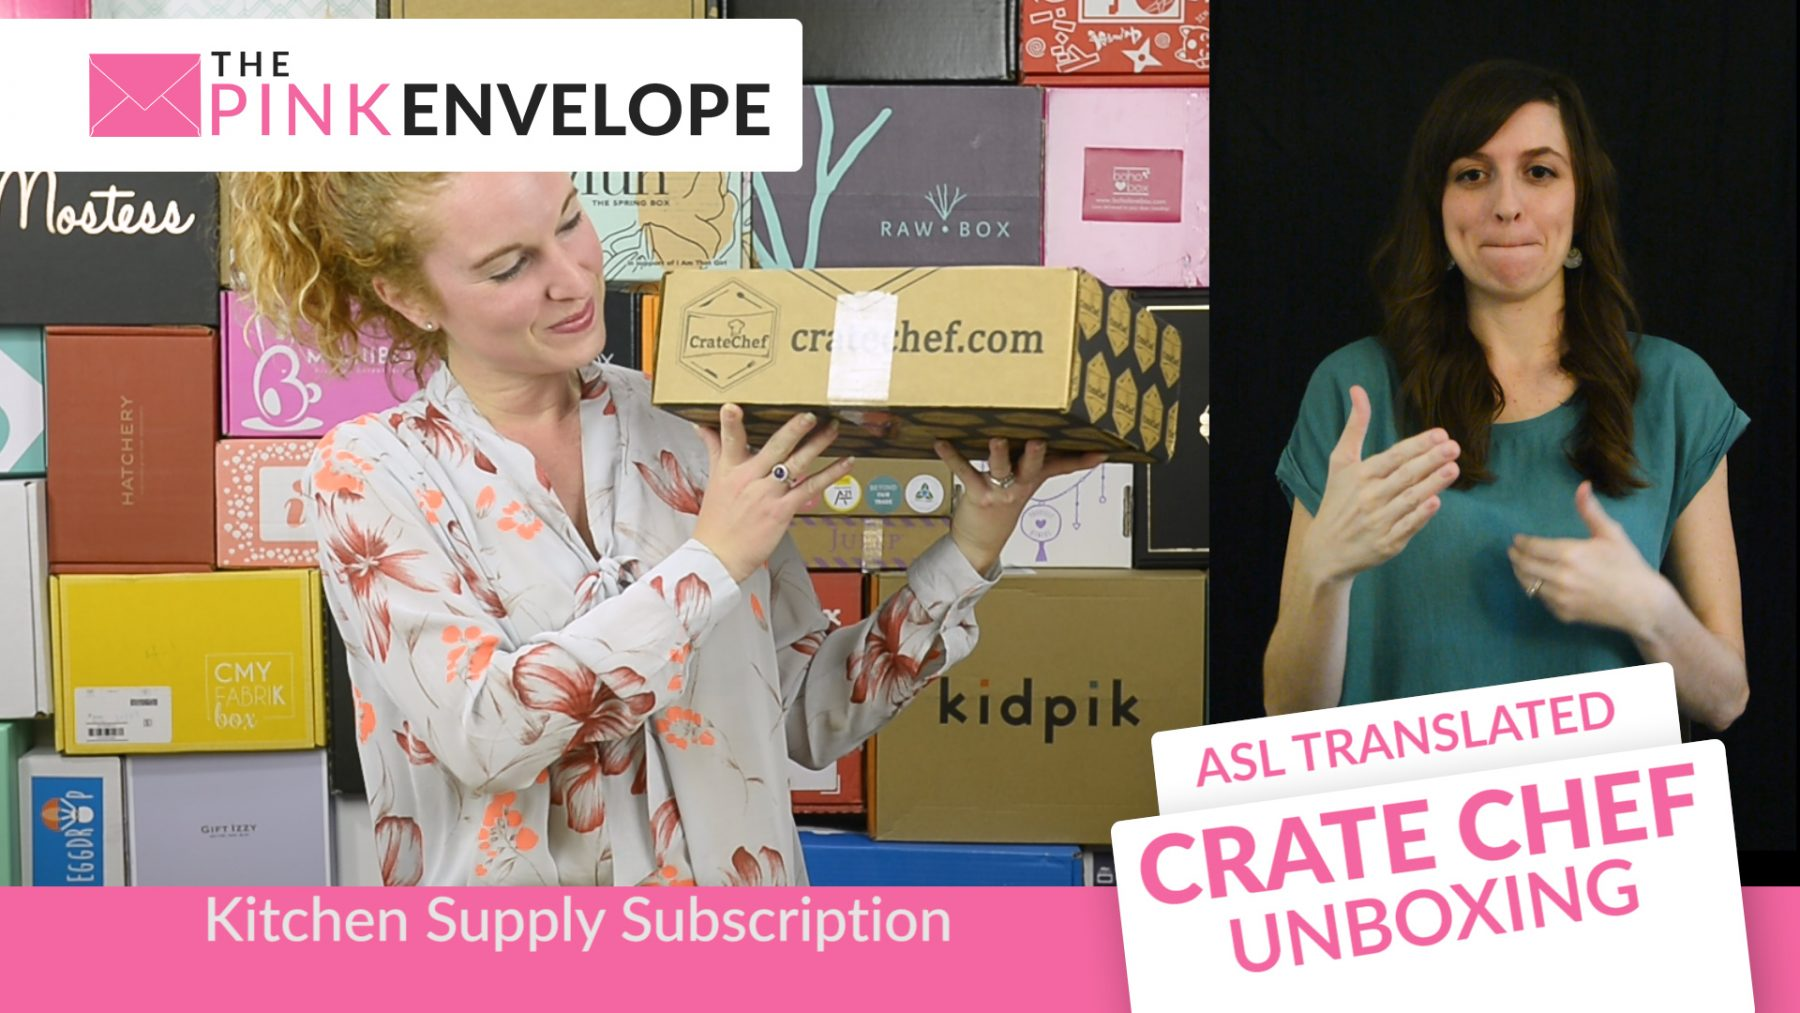 Crate Chef – Cooking Subscription Box with ASL Translation